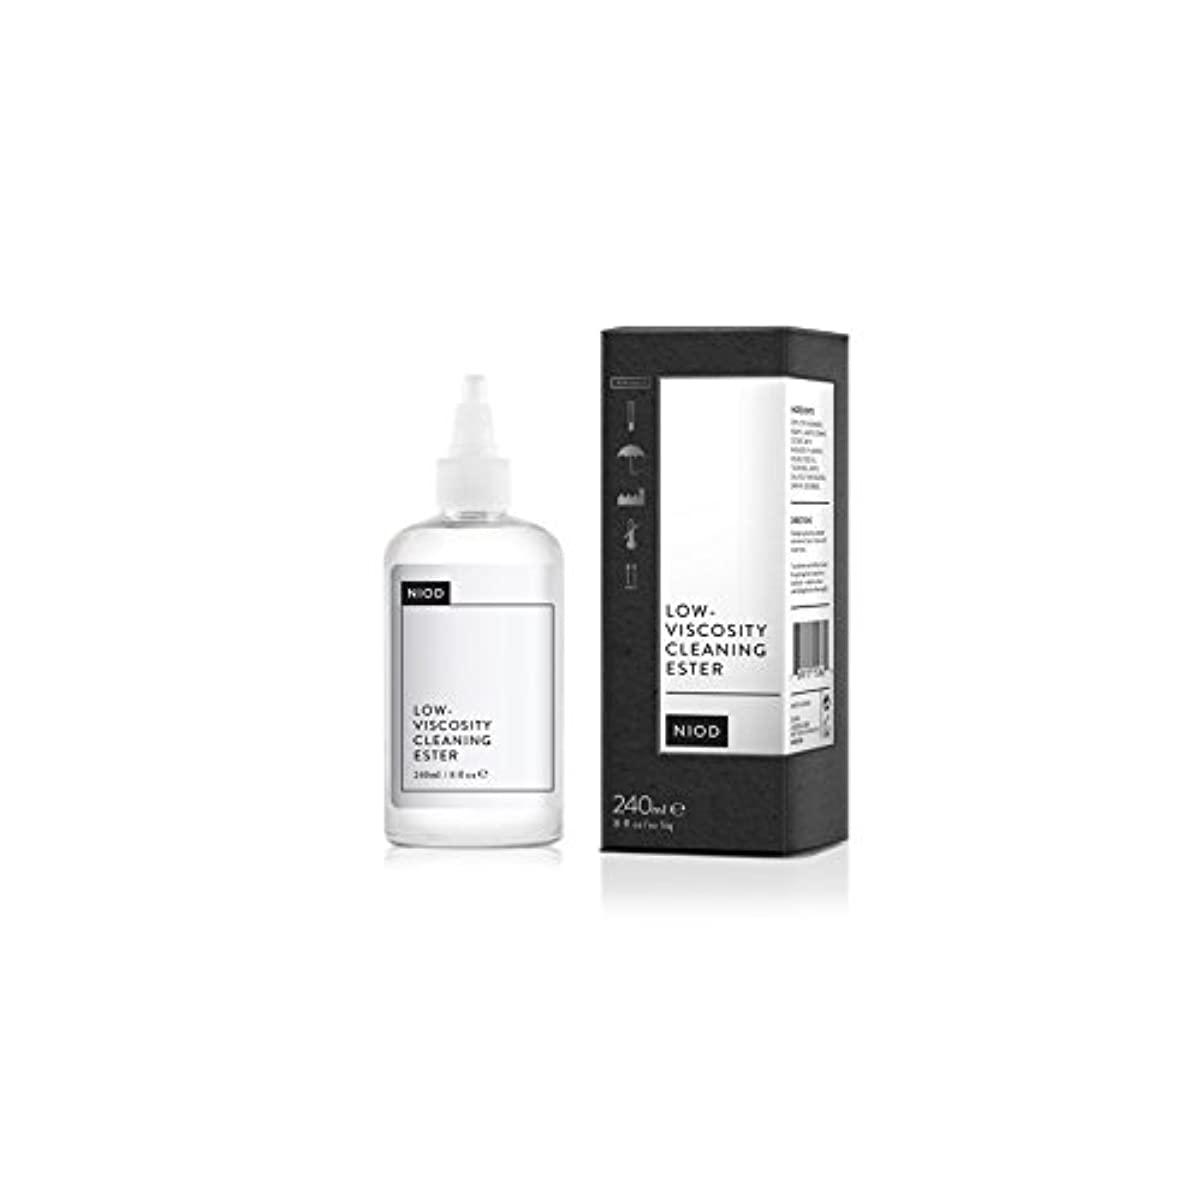 Niod Low-Viscosity Cleaning Ester (240ml) (Pack of 6) - 低粘度のクリーニングエステル(240ミリリットル) x6 [並行輸入品]